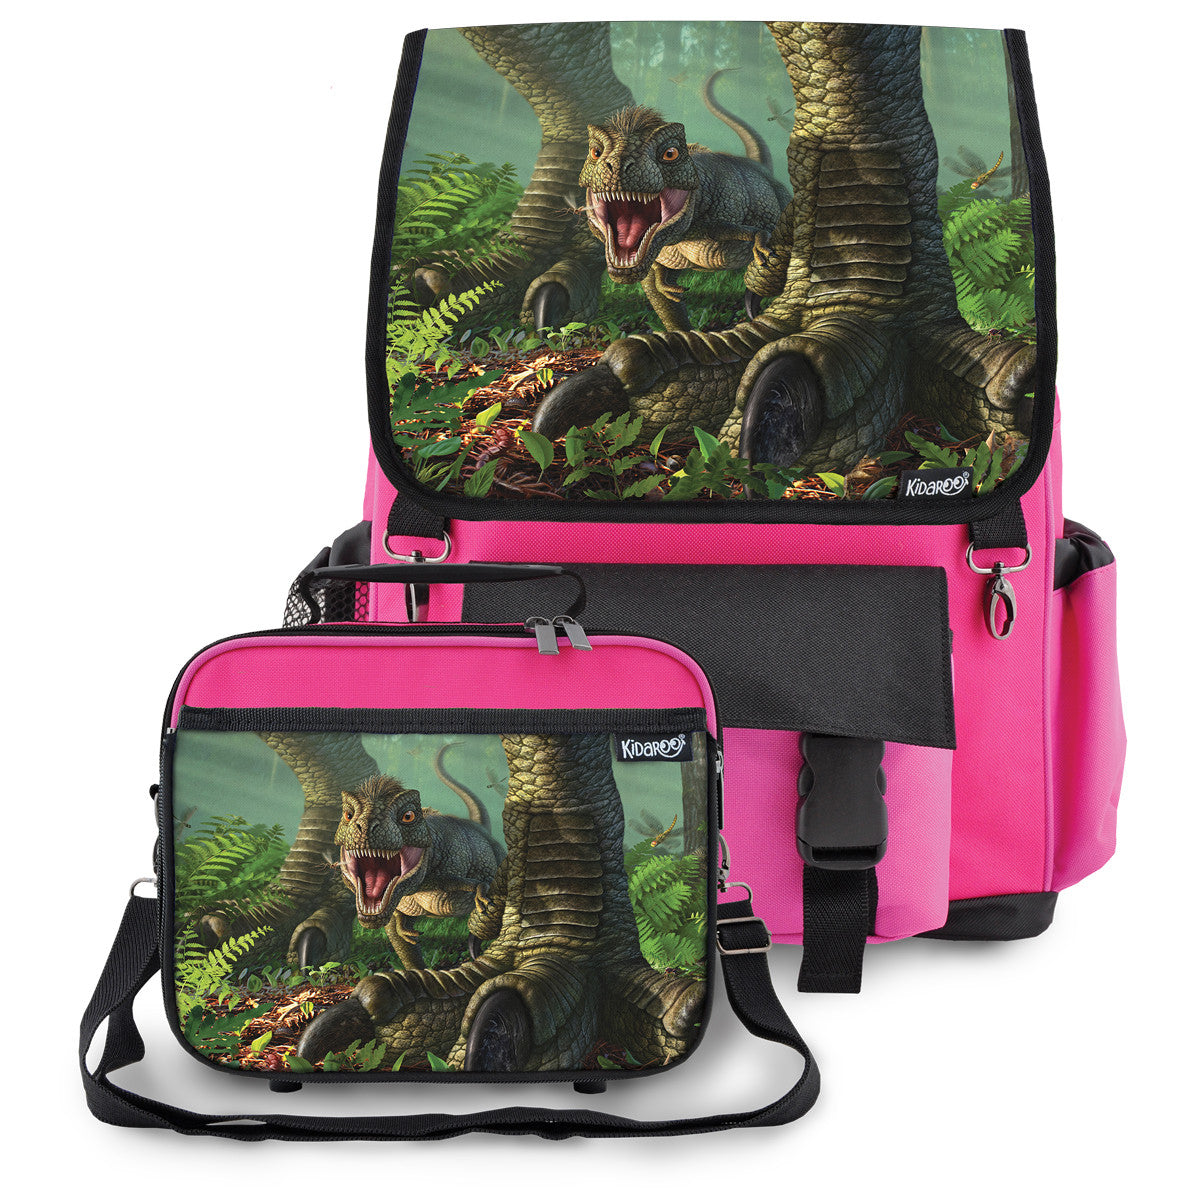 Kidaroo Pink Baby Wee Rex Dinosaur School Backpack & Lunchbox Set for Boys, Girls, Kids